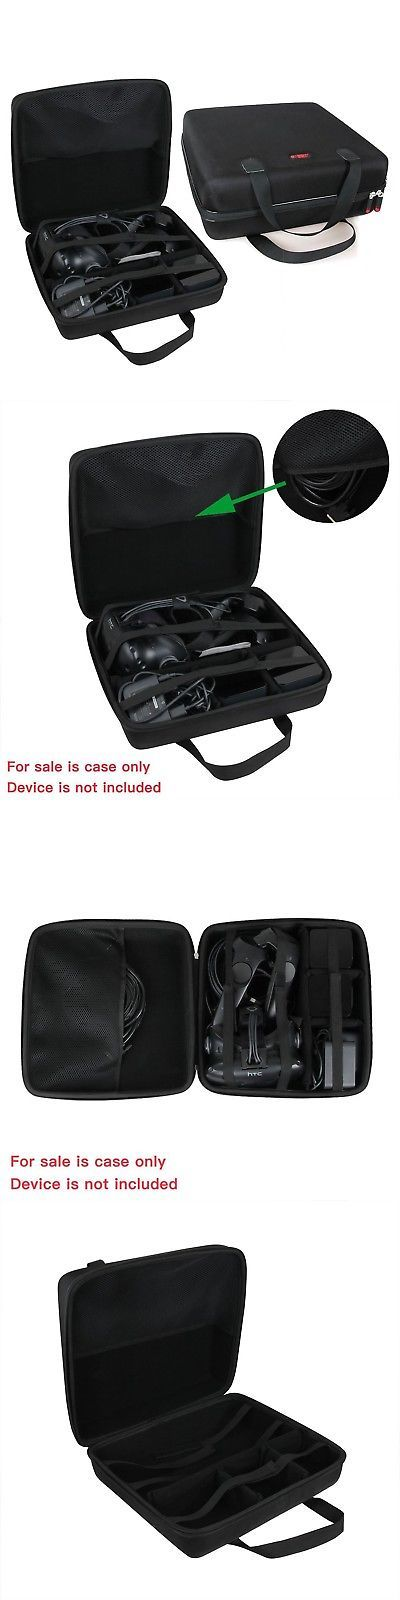 PC and Console VR Headsets: Hard Eva Travel Case For Htc Vive - Vr Virtual Reality System By Hermitsh... New -> BUY IT NOW ONLY: $52.93 on eBay!